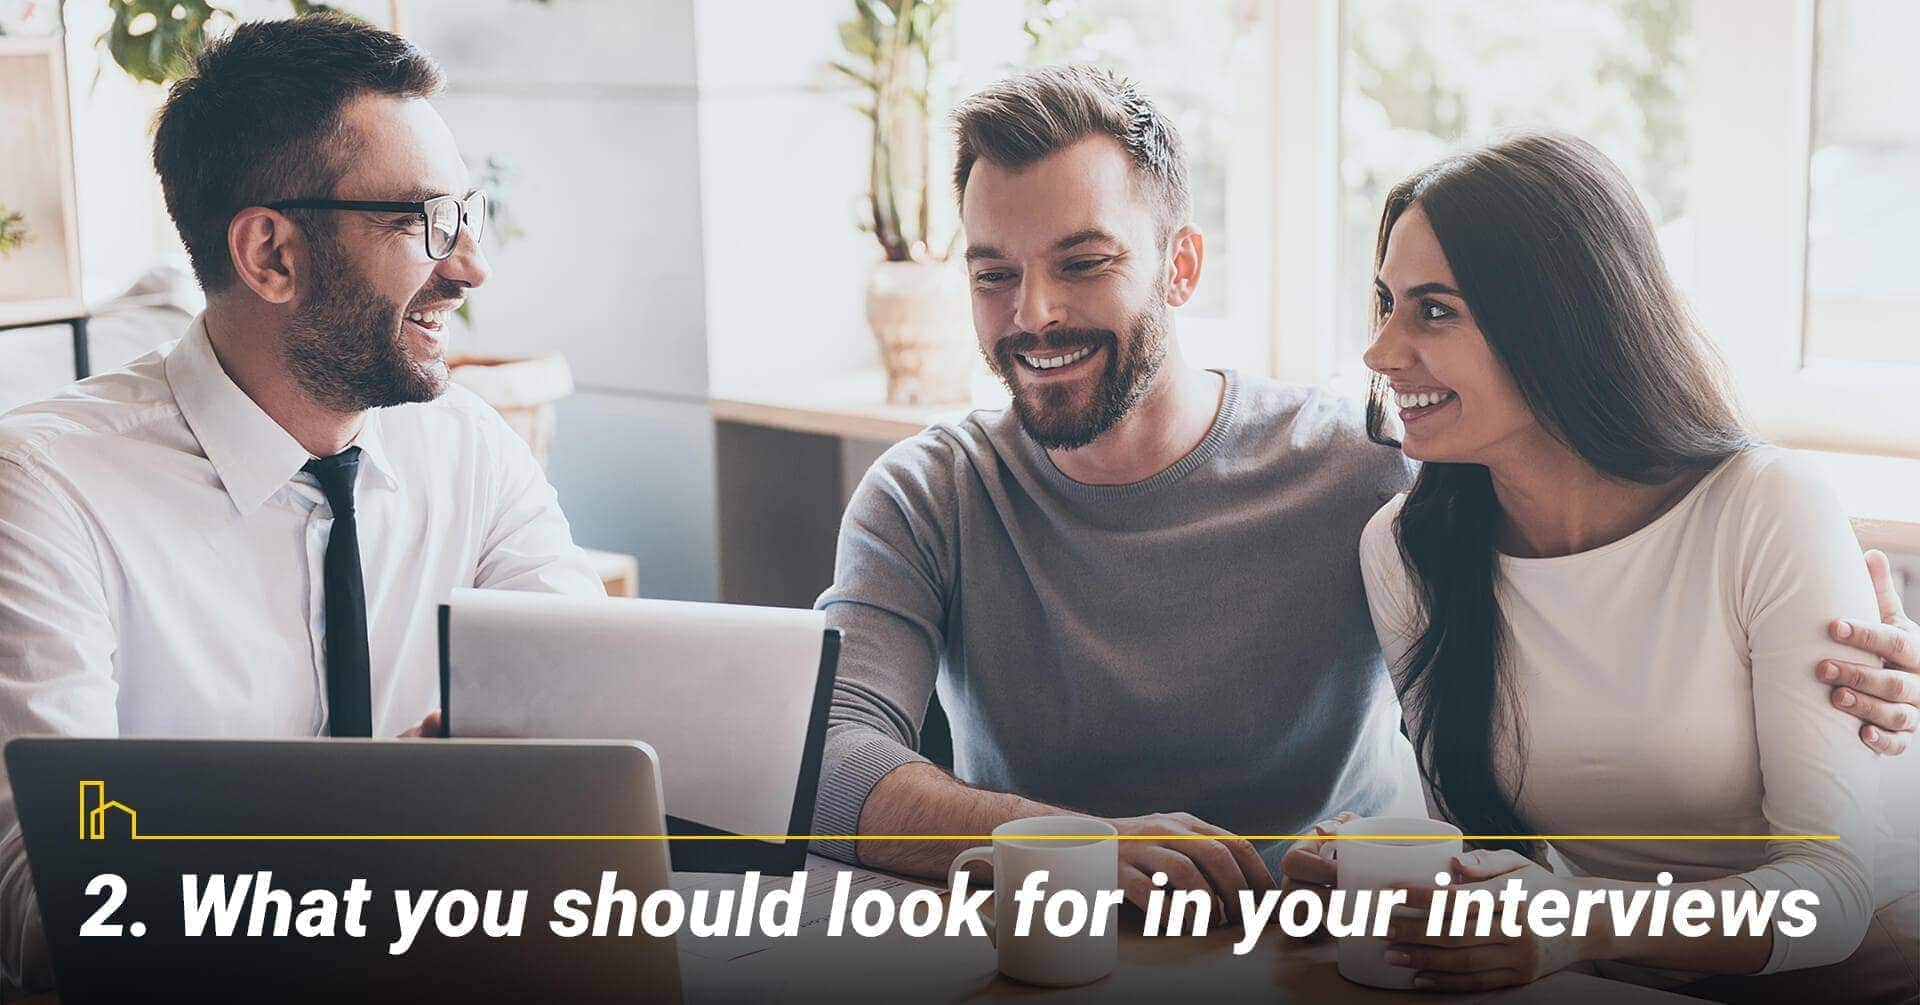 What you should look for in your interviews